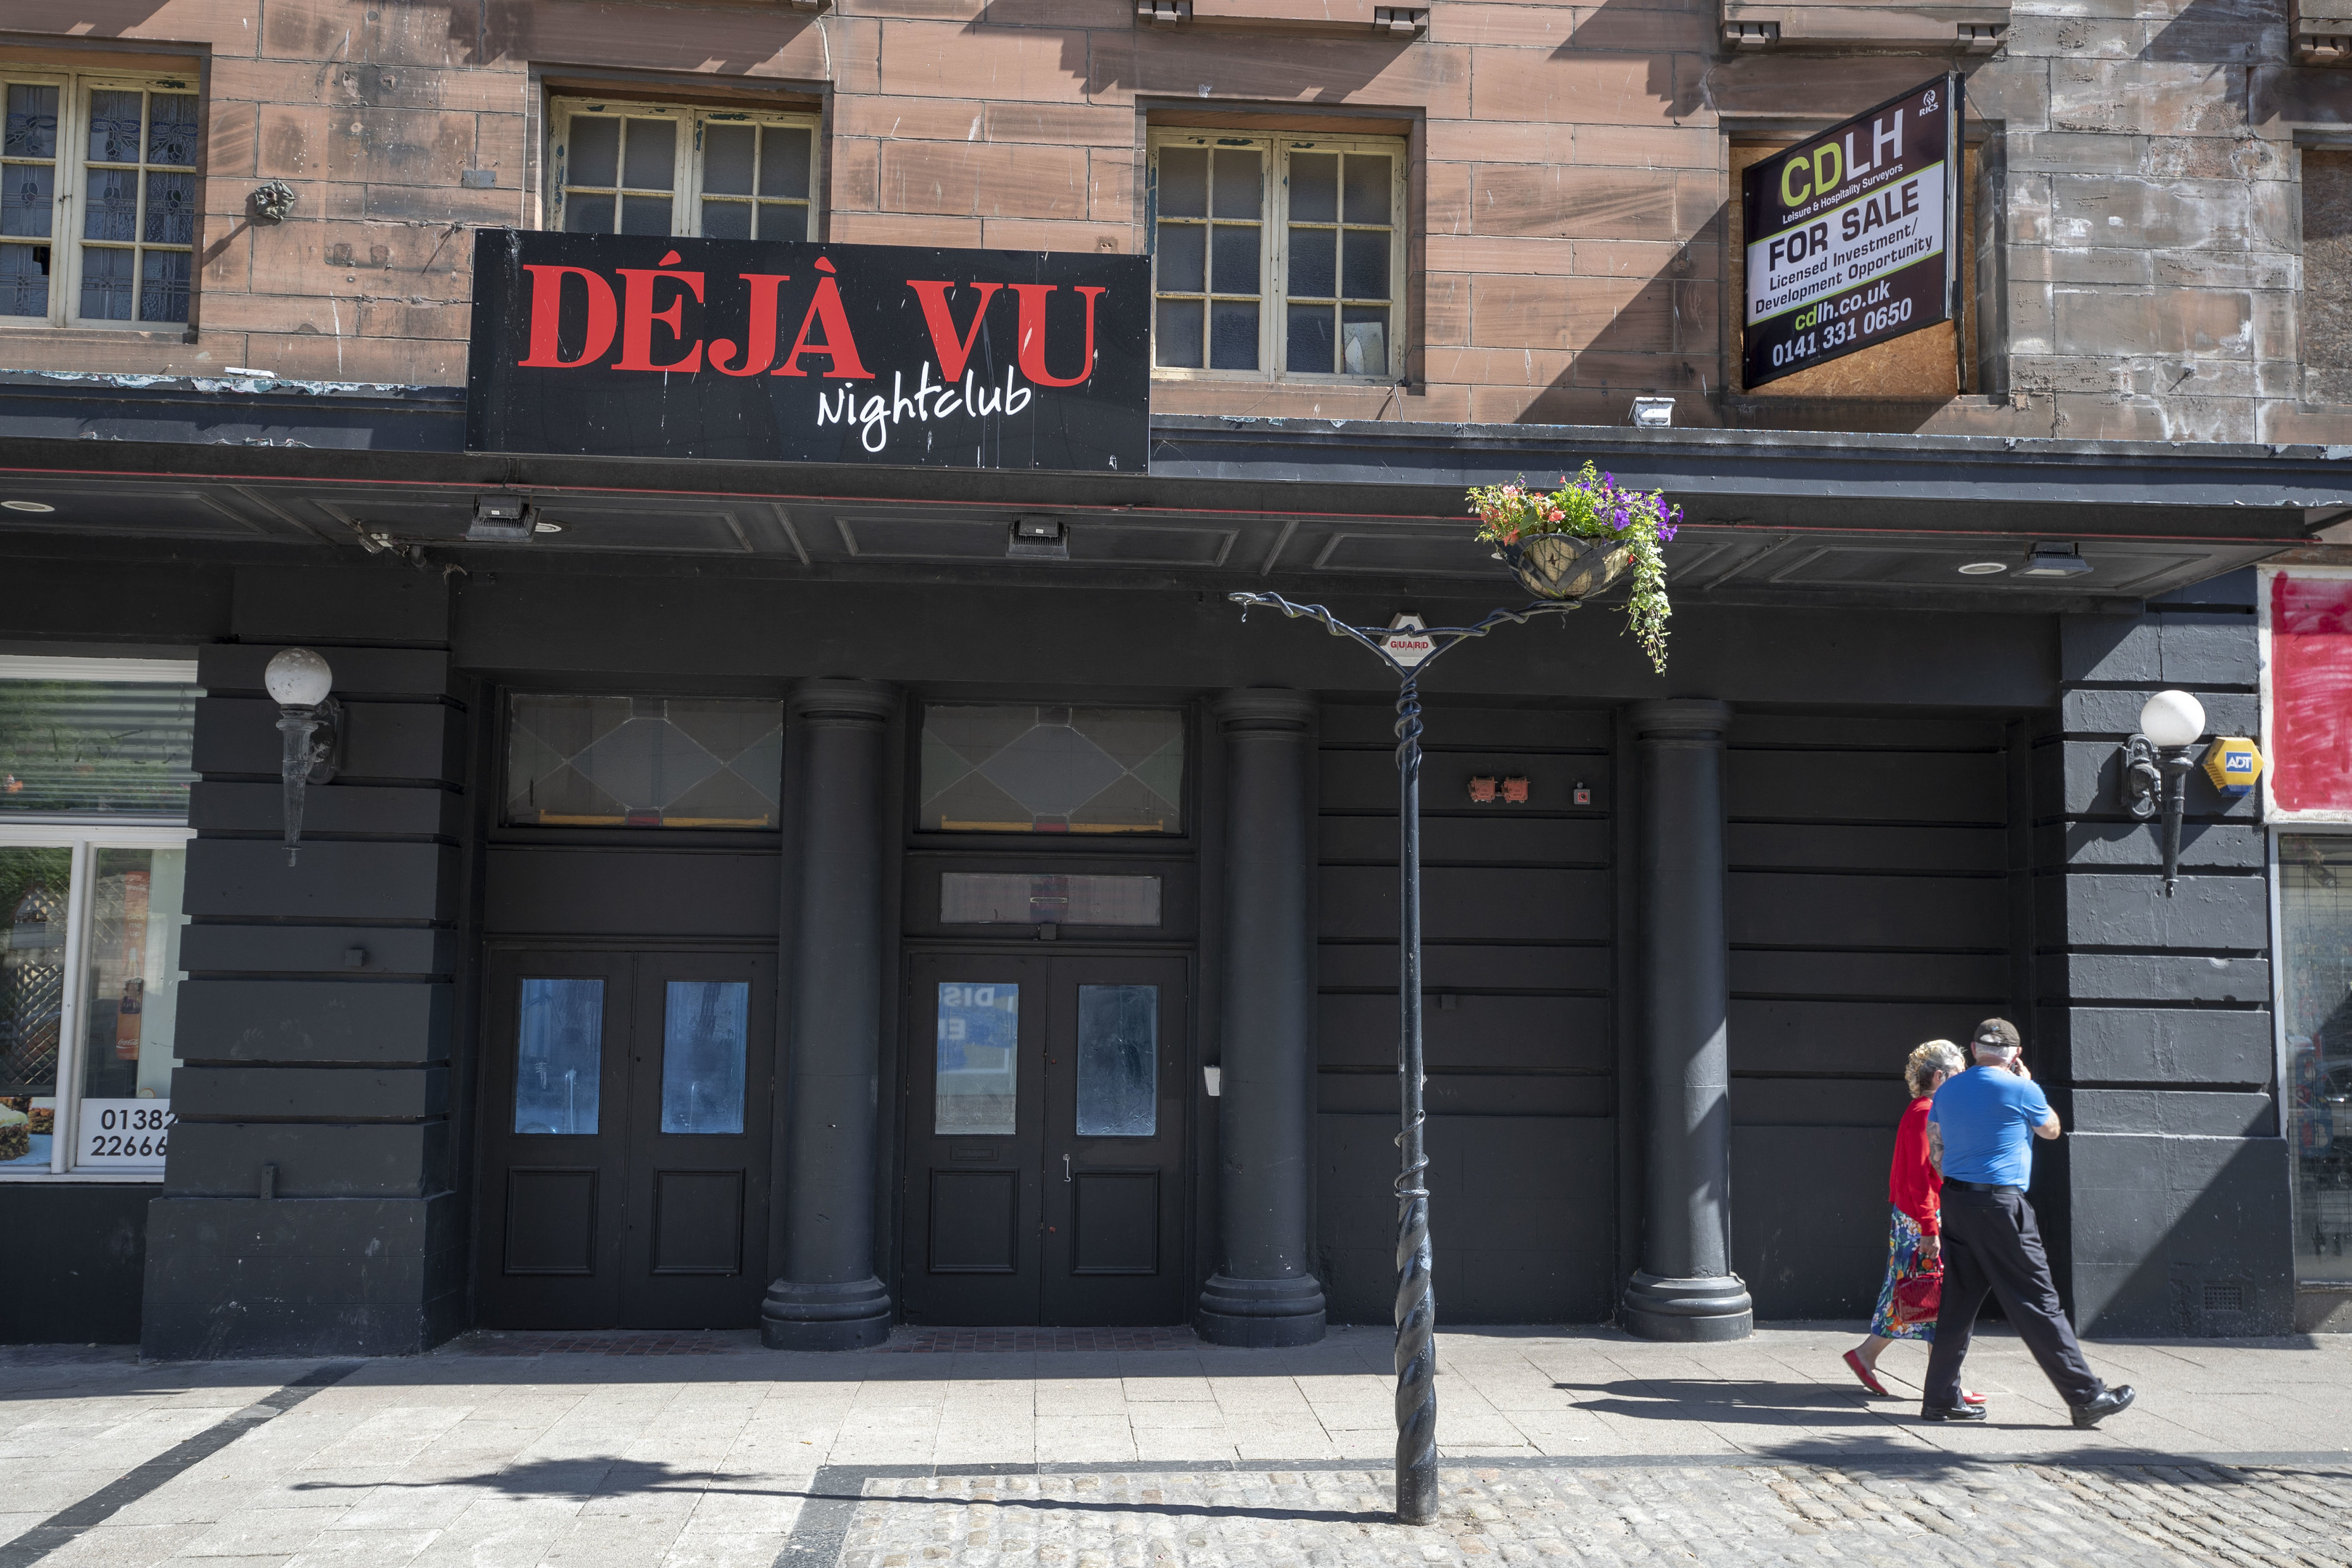 The theatre is currently the location for the Deja Vu nightclub